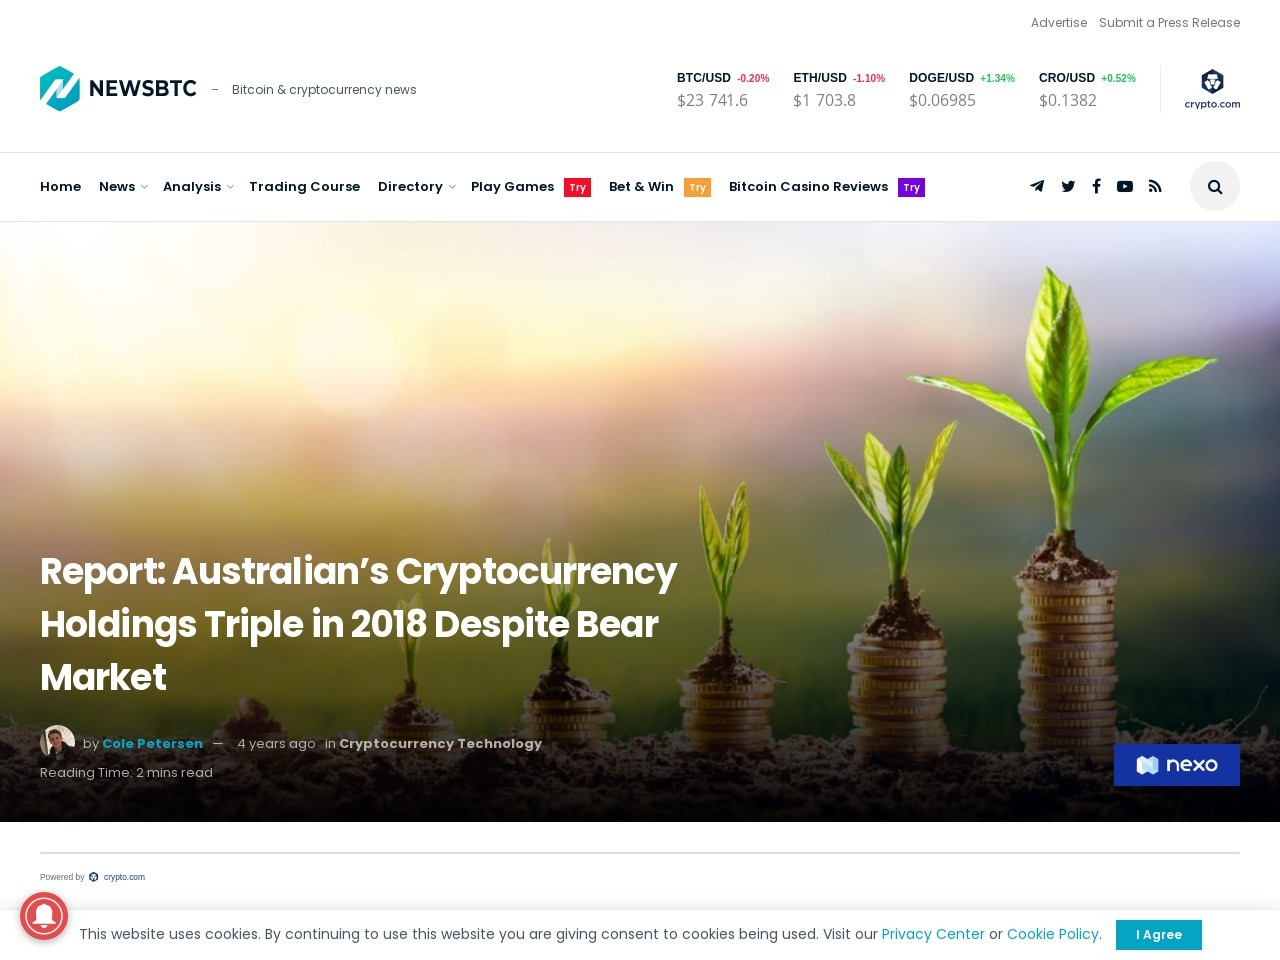 Report: Australian's Cryptocurrency Holdings Triple in 2018 Despite Bear Market